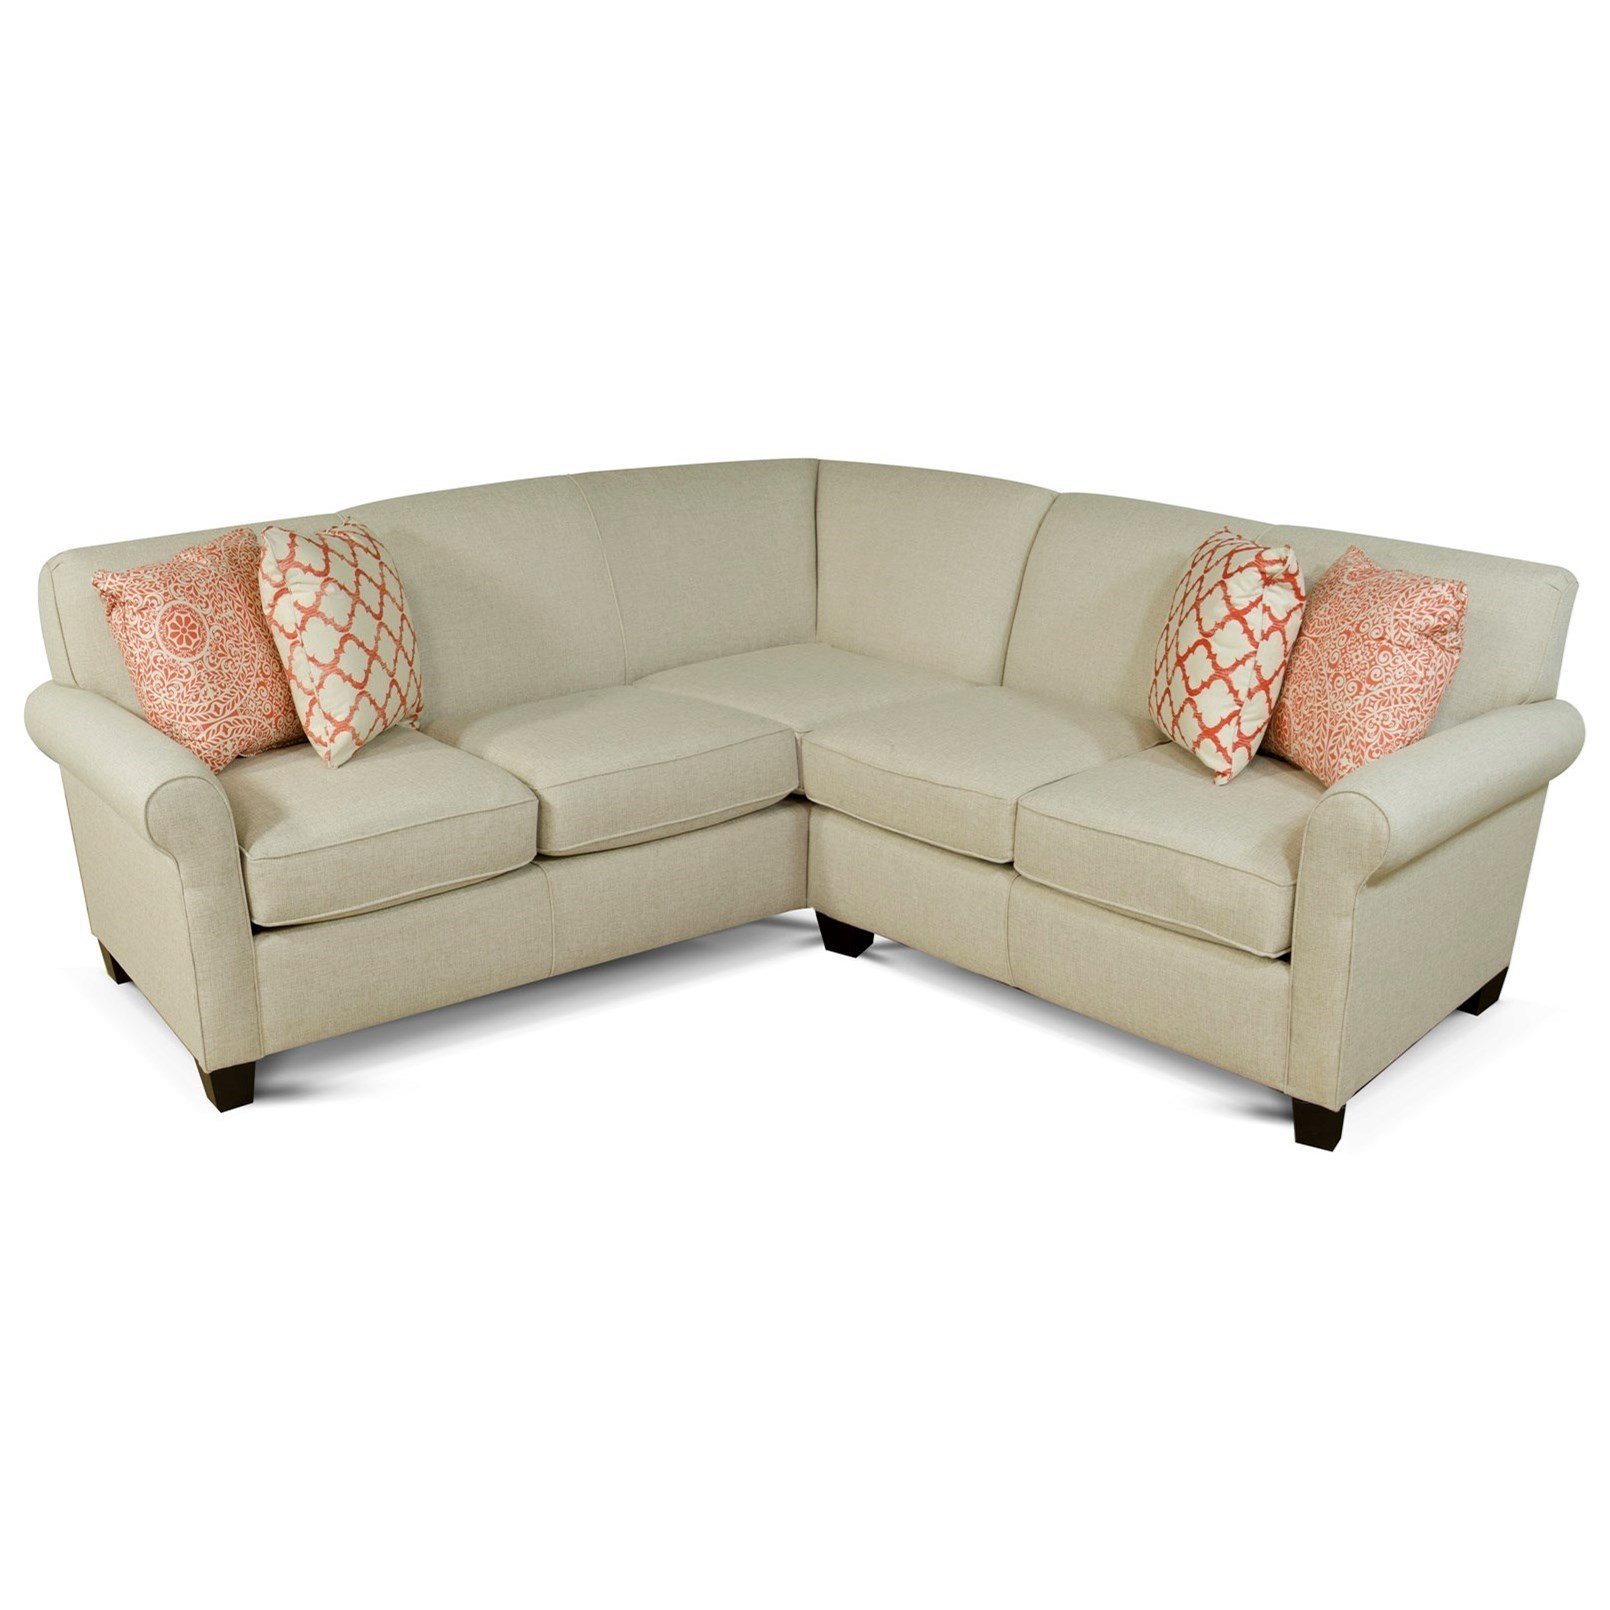 Delicieux Angie Small Corner Sectional Sofa By England